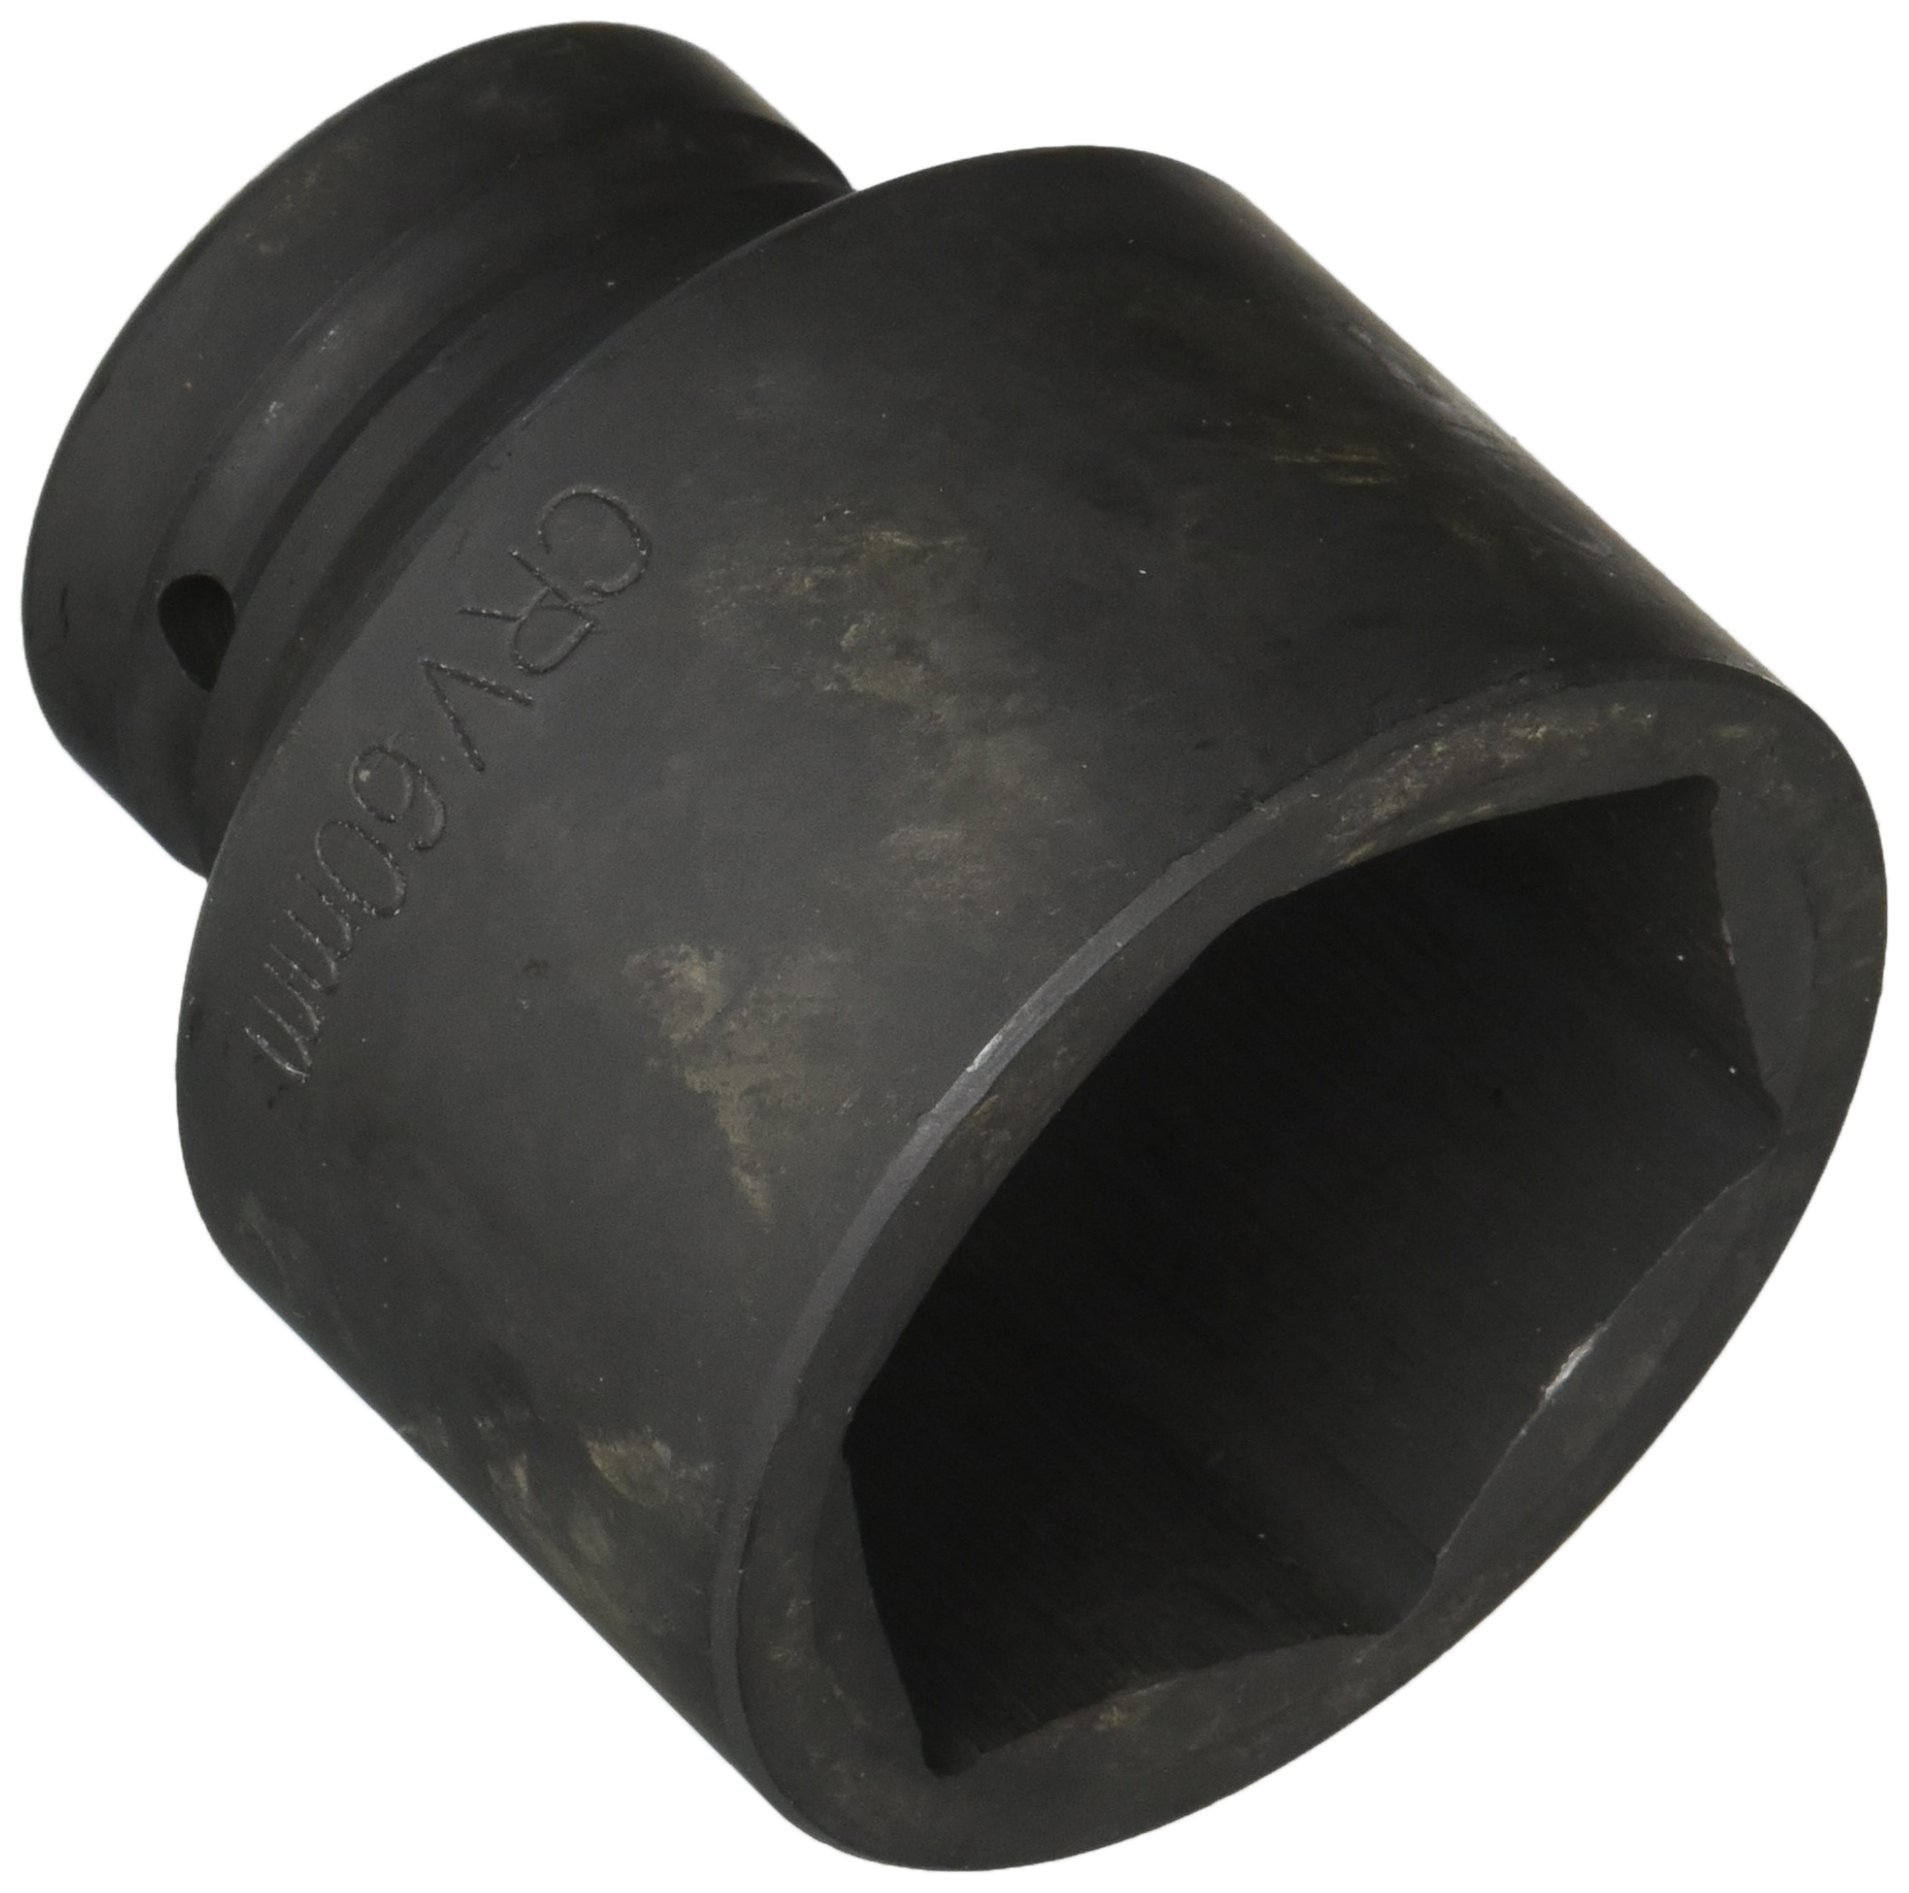 Cheater Wrench 60mmsocket Black 60 mm Drive Impact Socket (1-inch) by Cheater Wrench (Image #1)